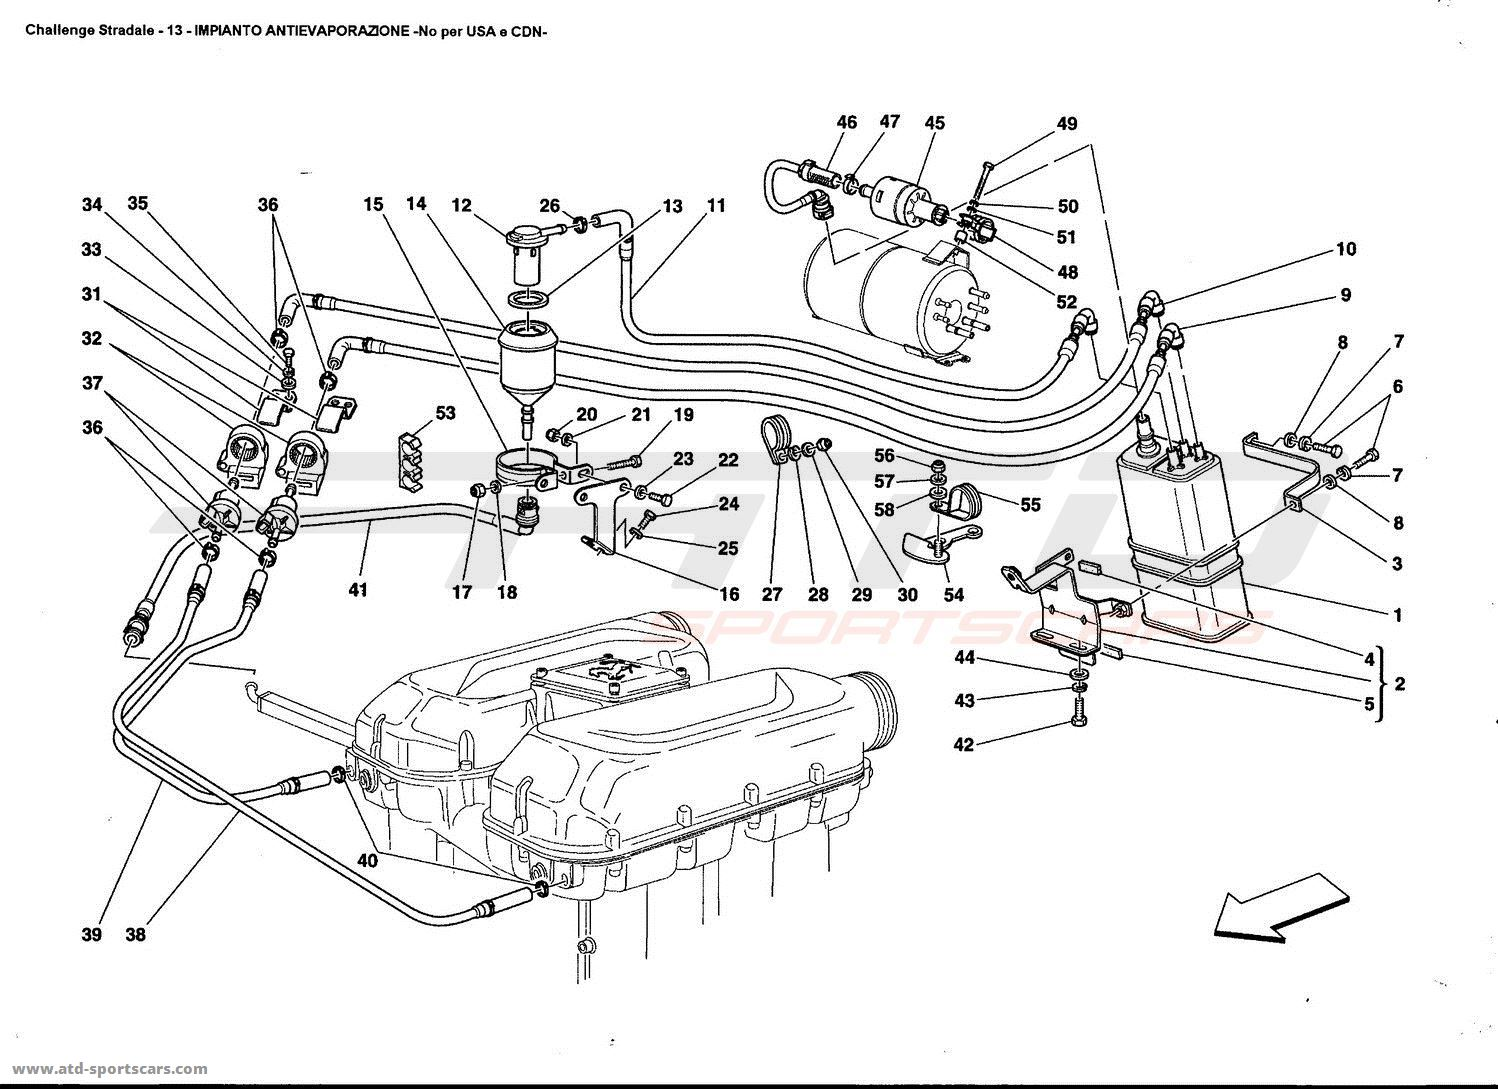 1981 Fiat Wiring Diagram Library Suzuki Antievaporation Device